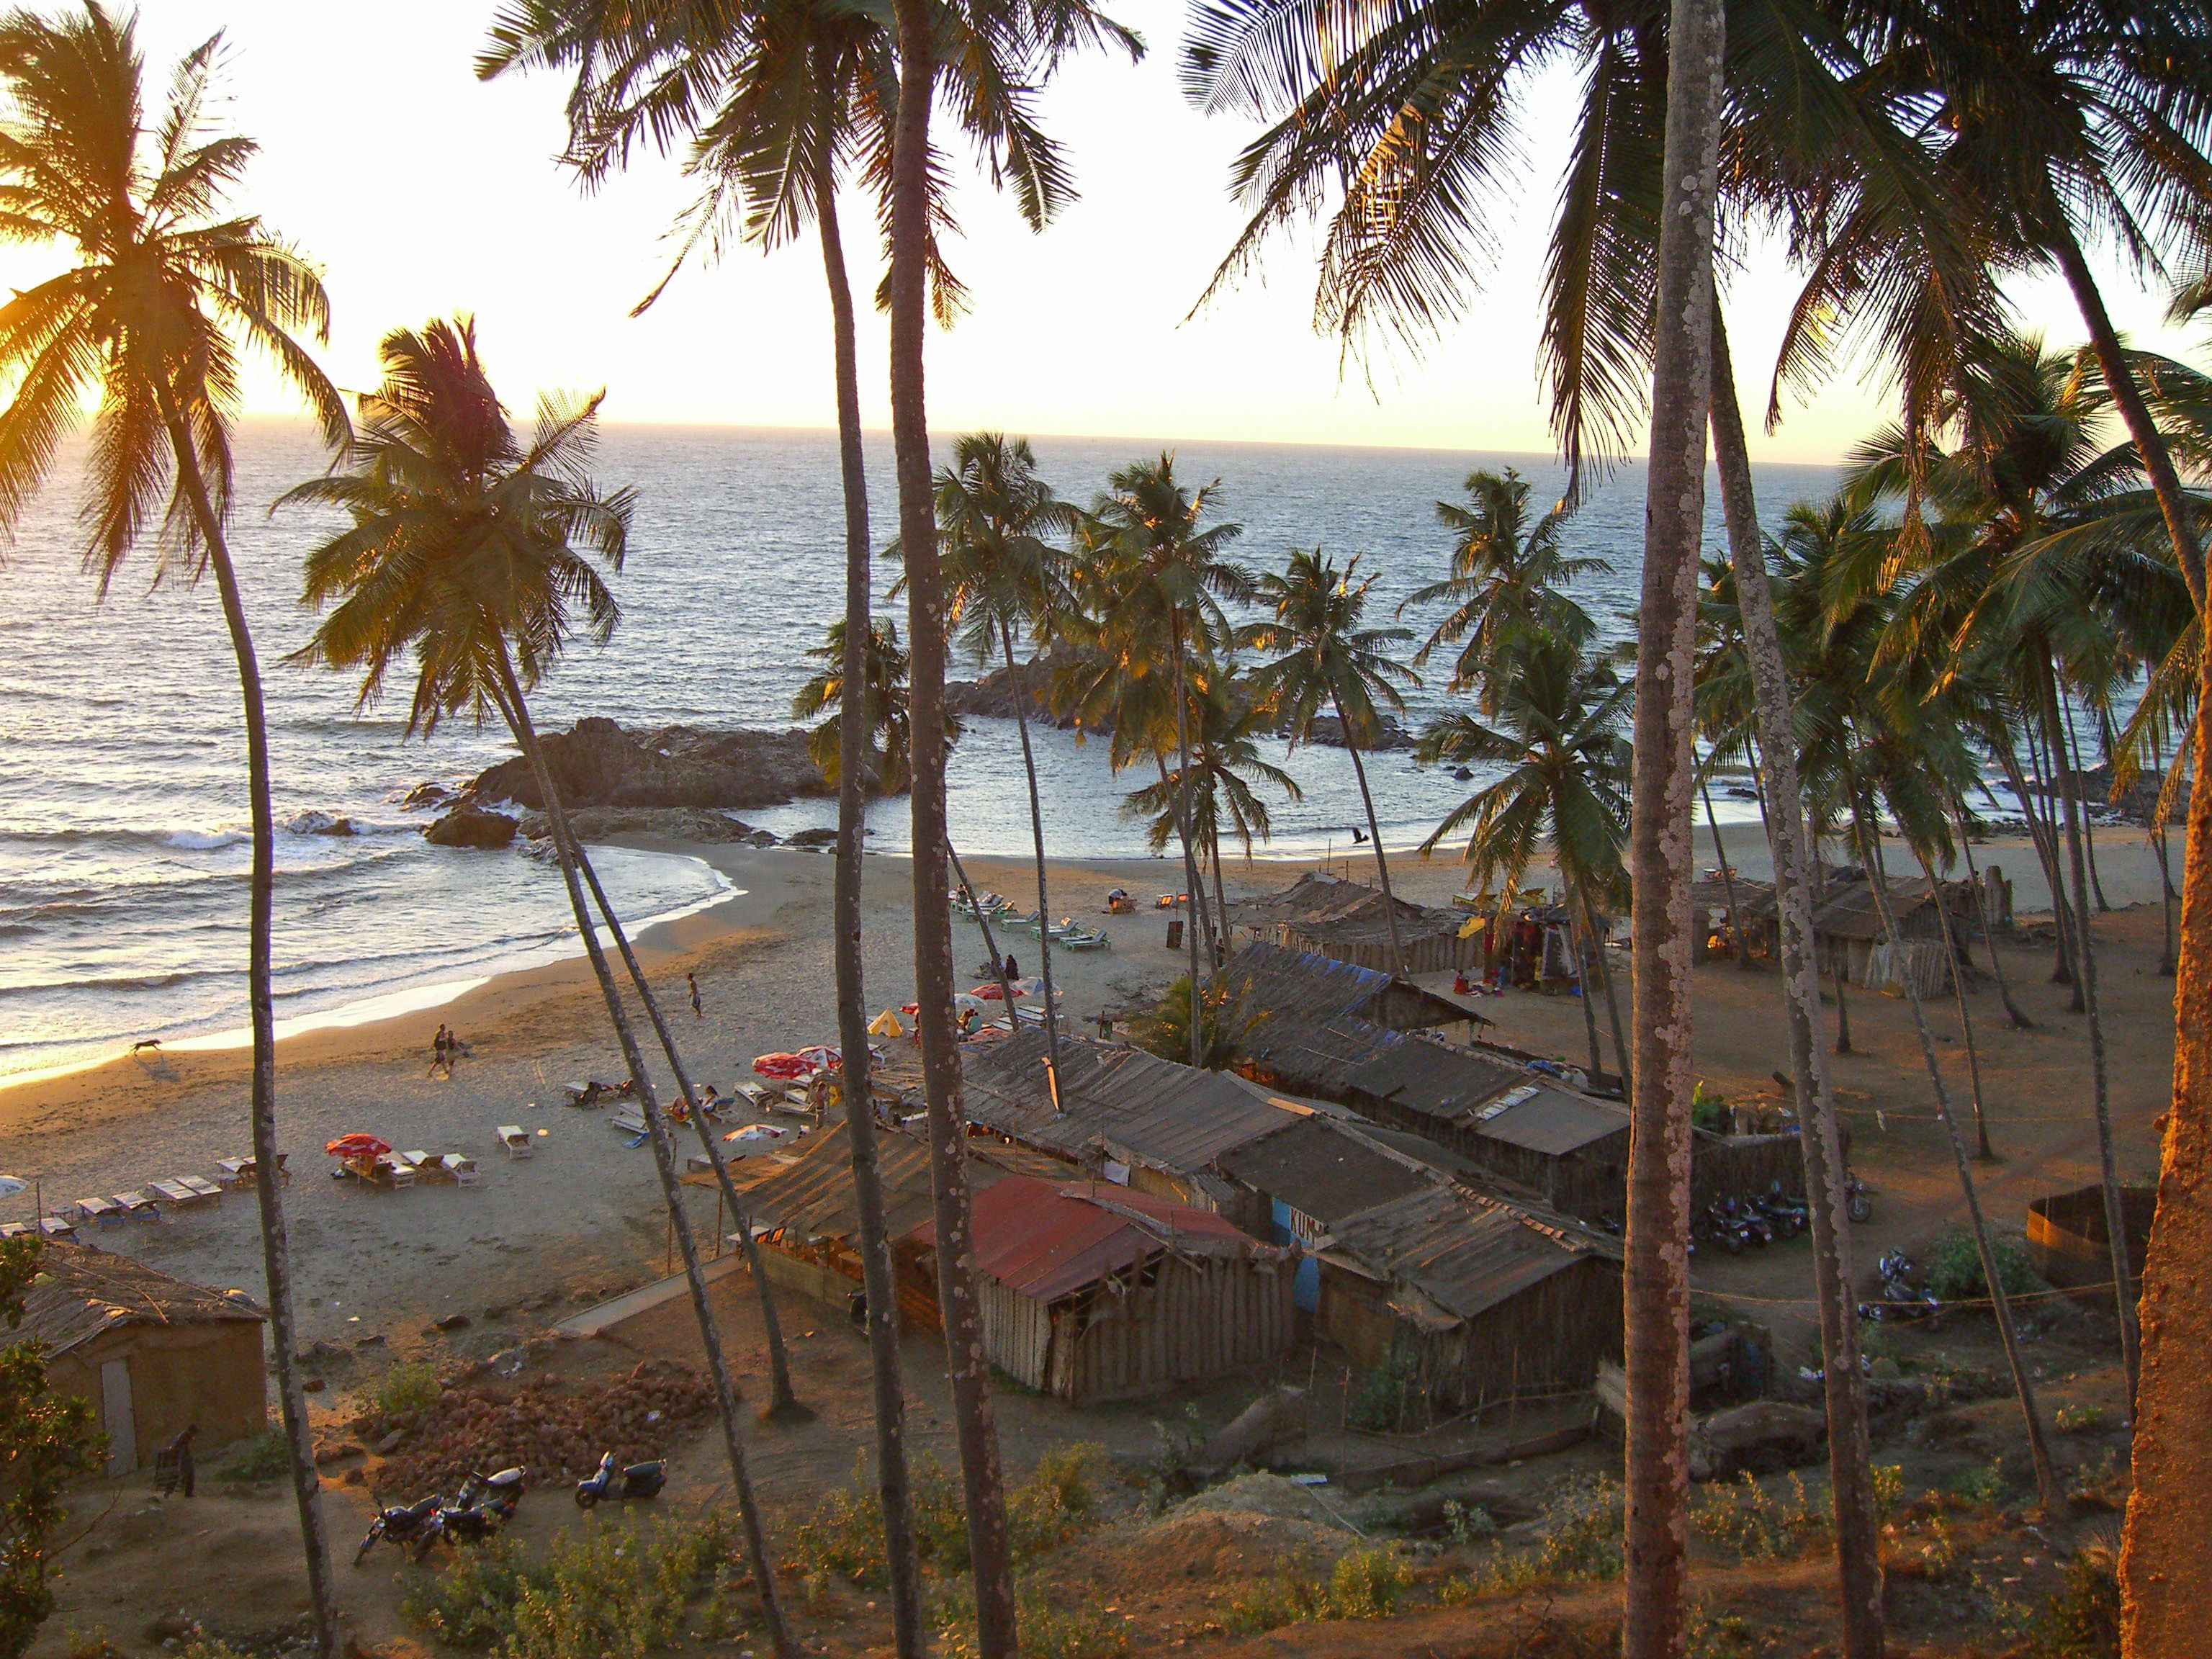 Vagator Beach is popular with backpackers in Goa, India